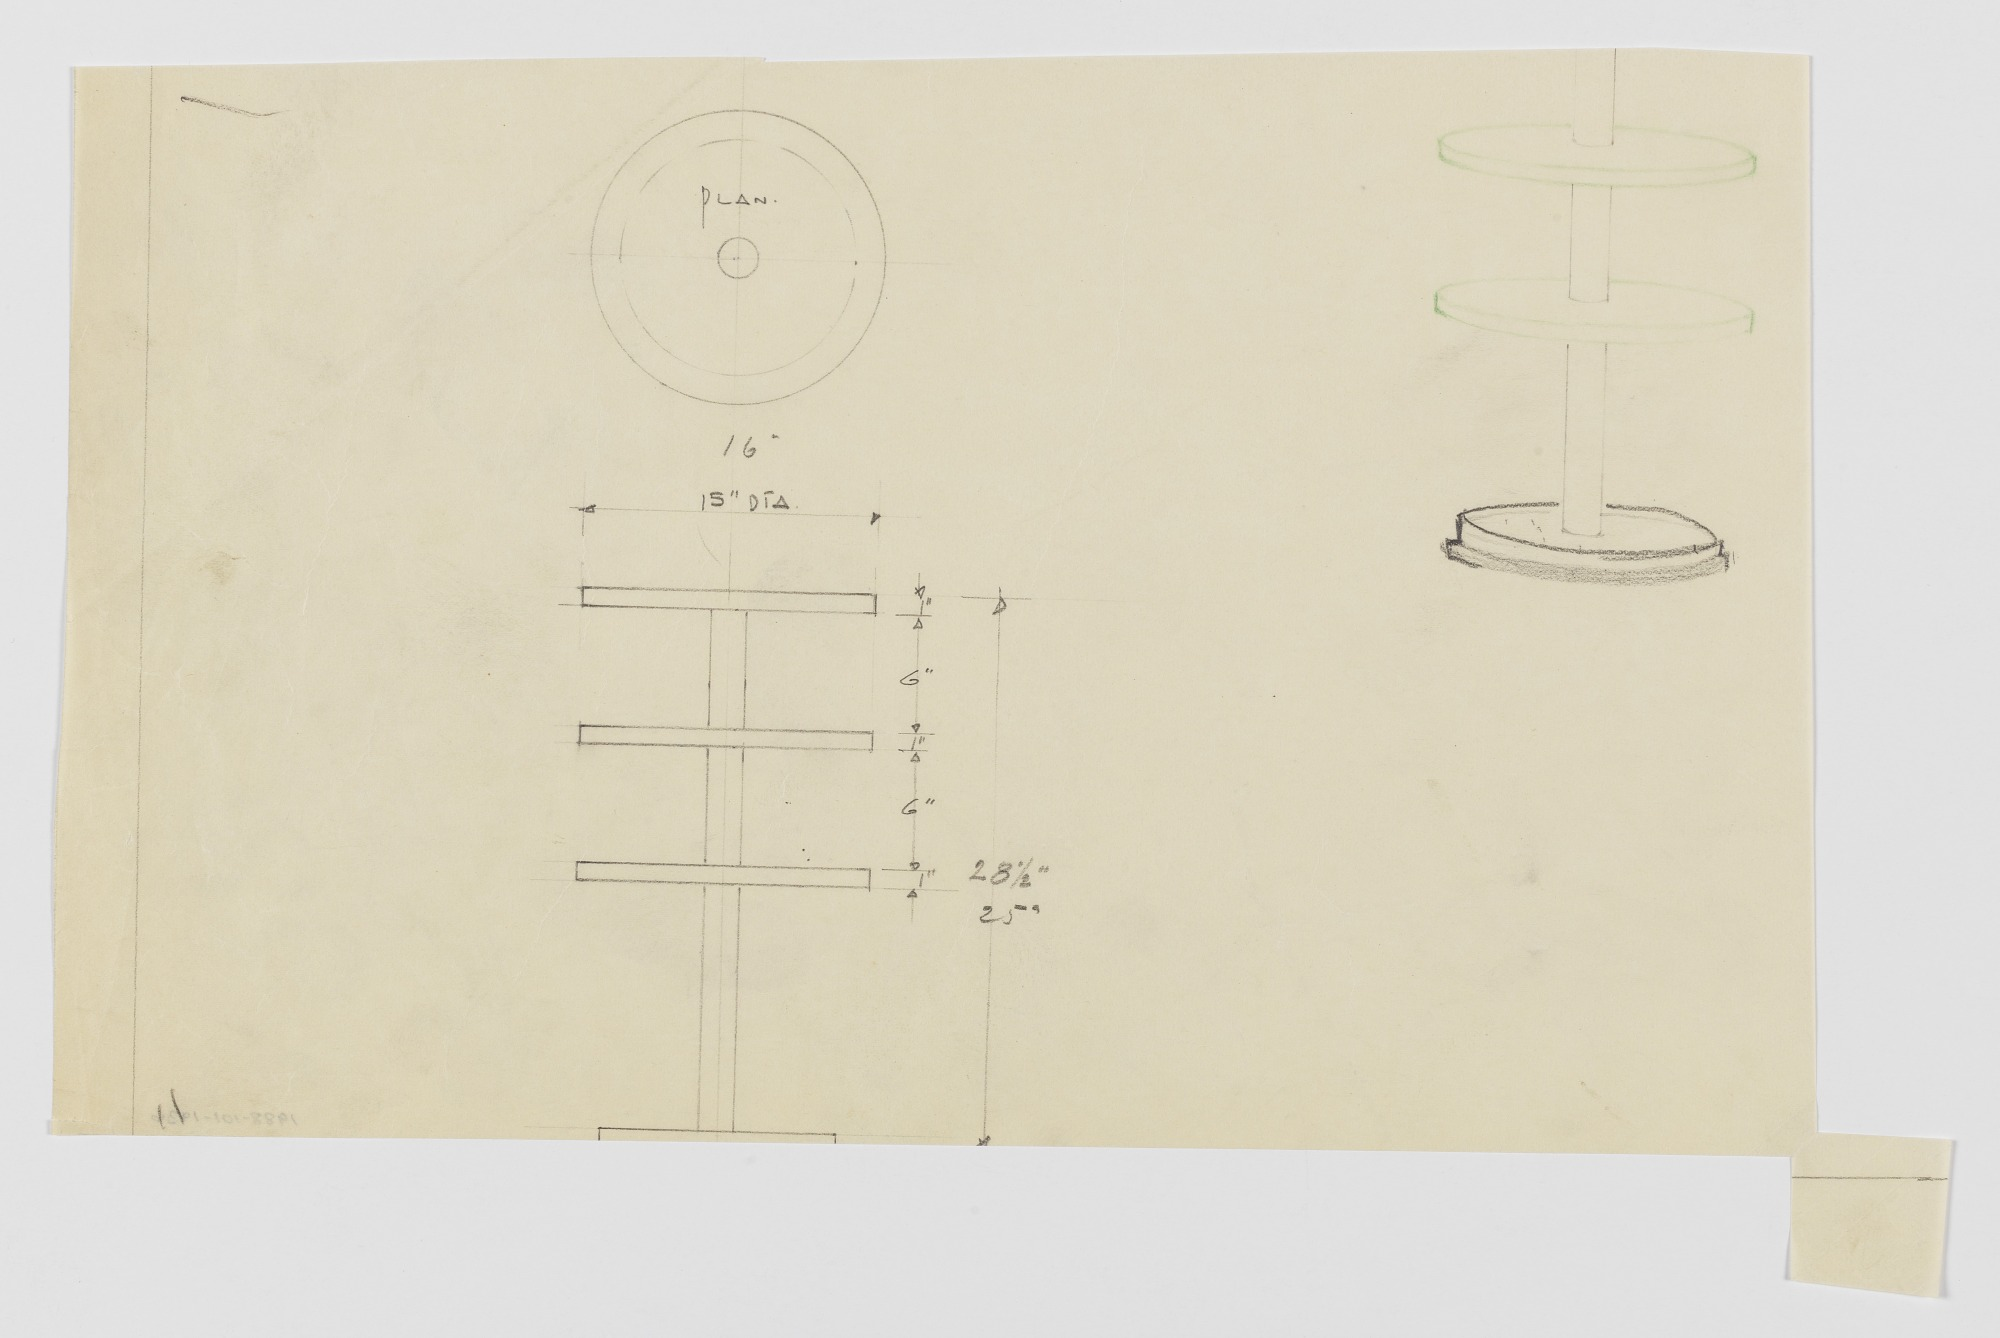 Design for Three-Tiered Circular Stand